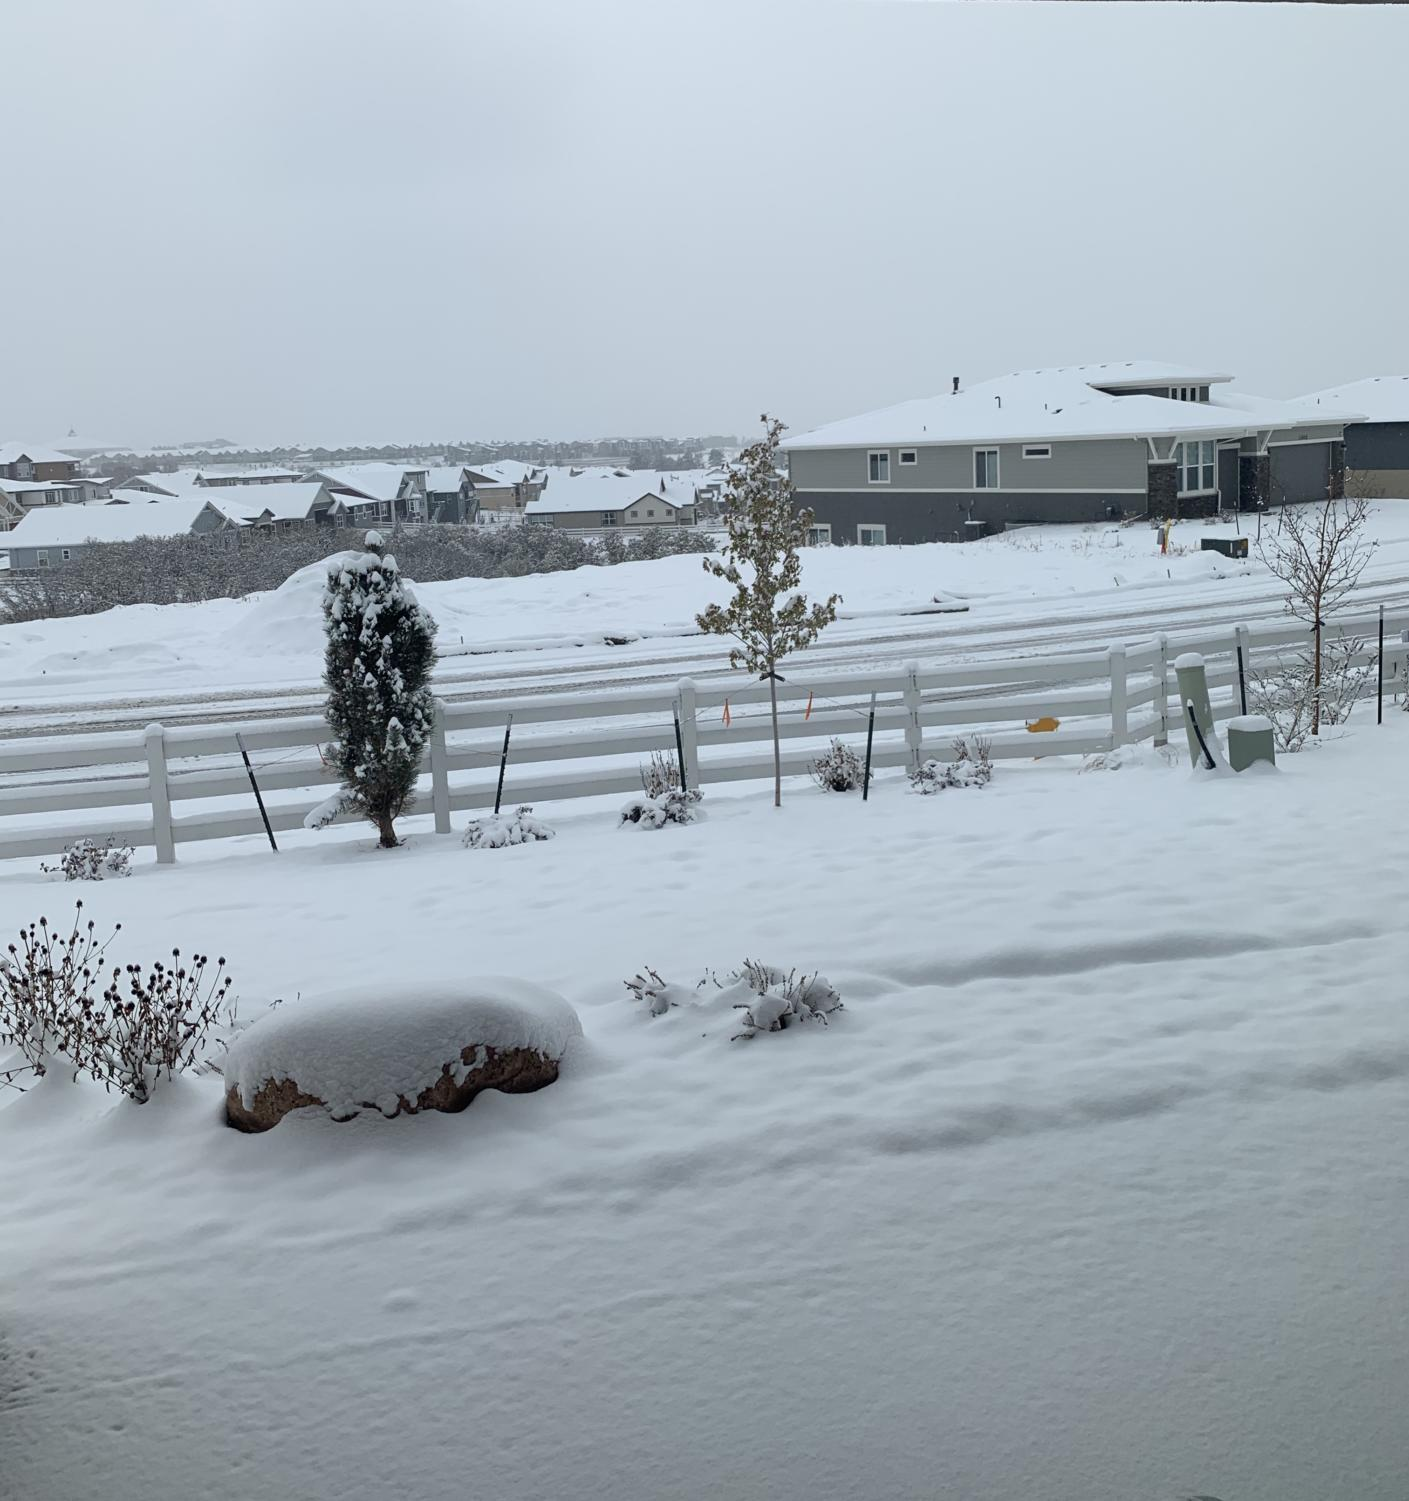 The first big snowfall of the year hits Colorado Springs. causing multiple snow days.